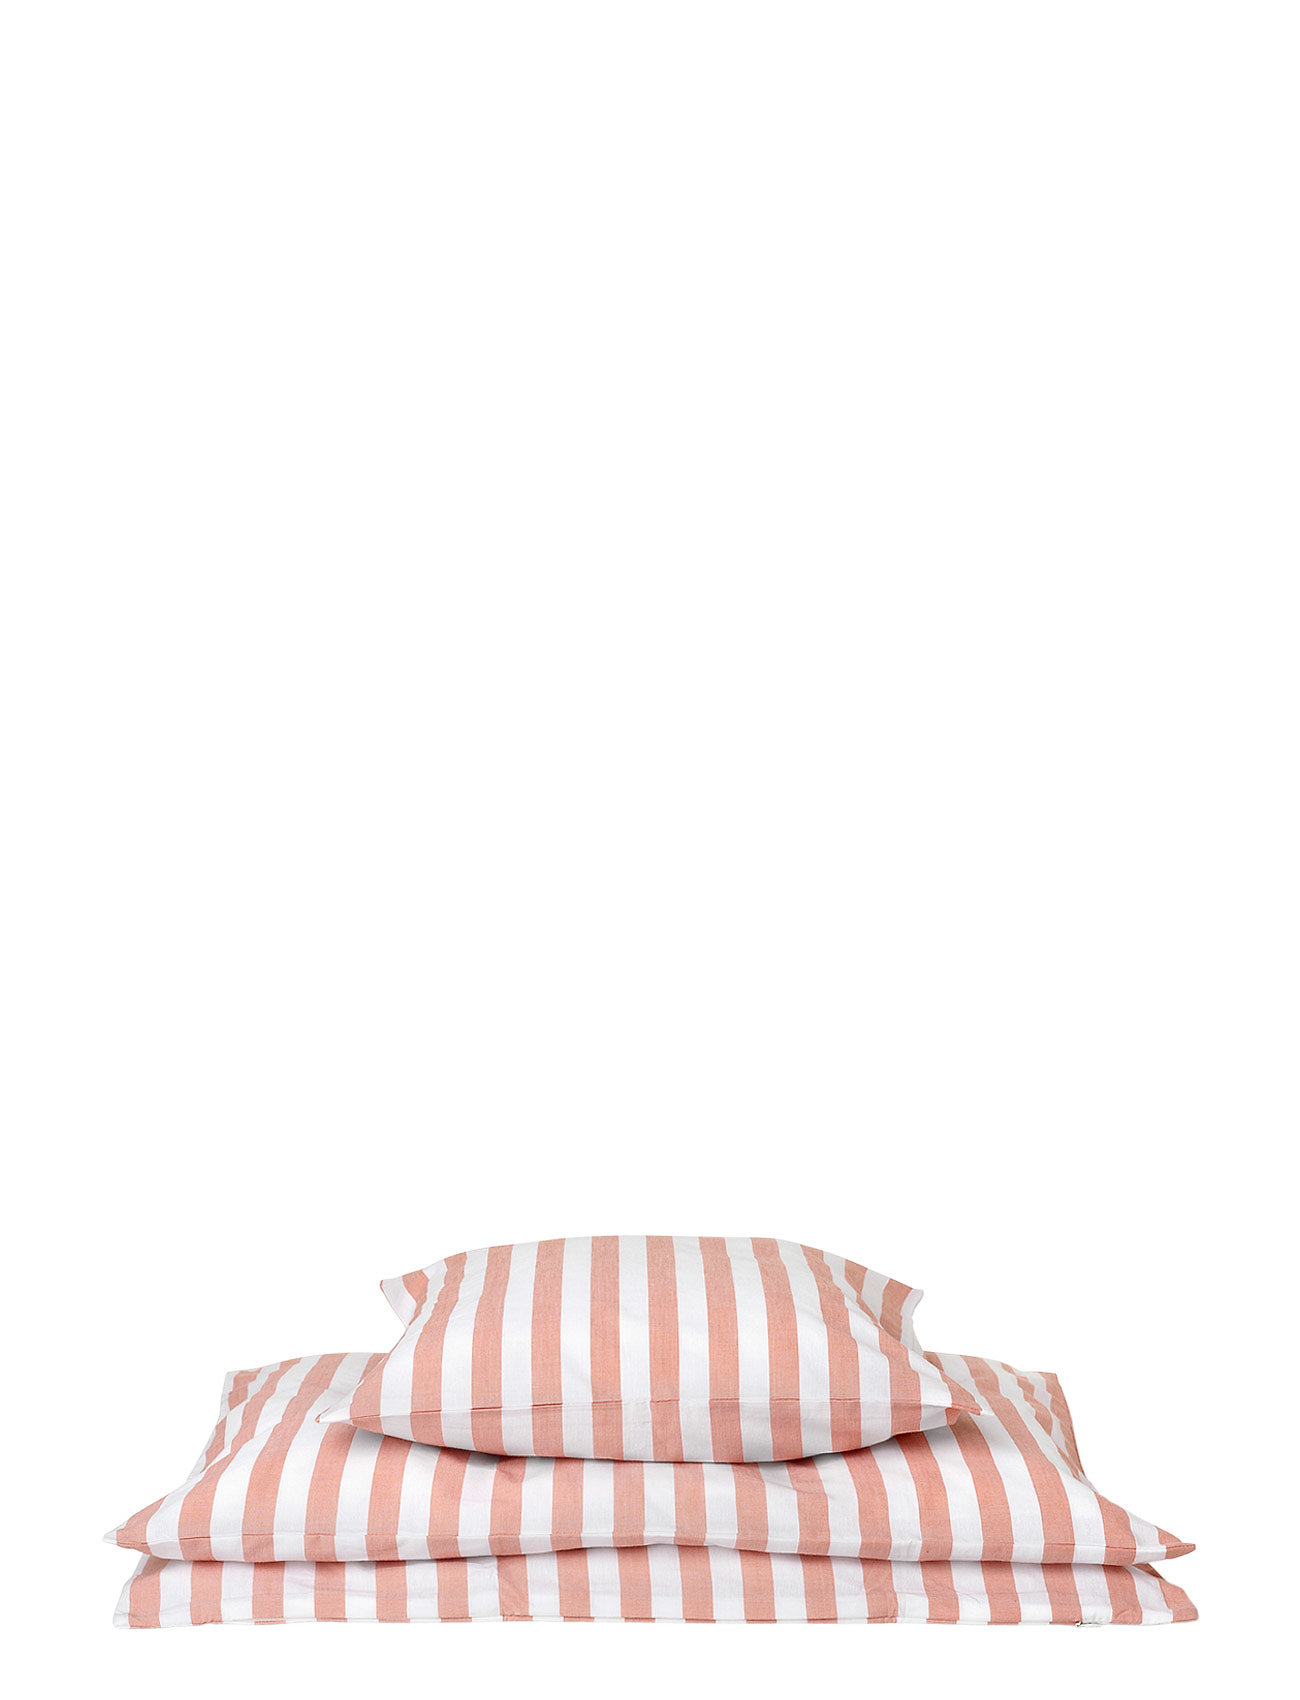 Liewood Bedding Y/D Stripe